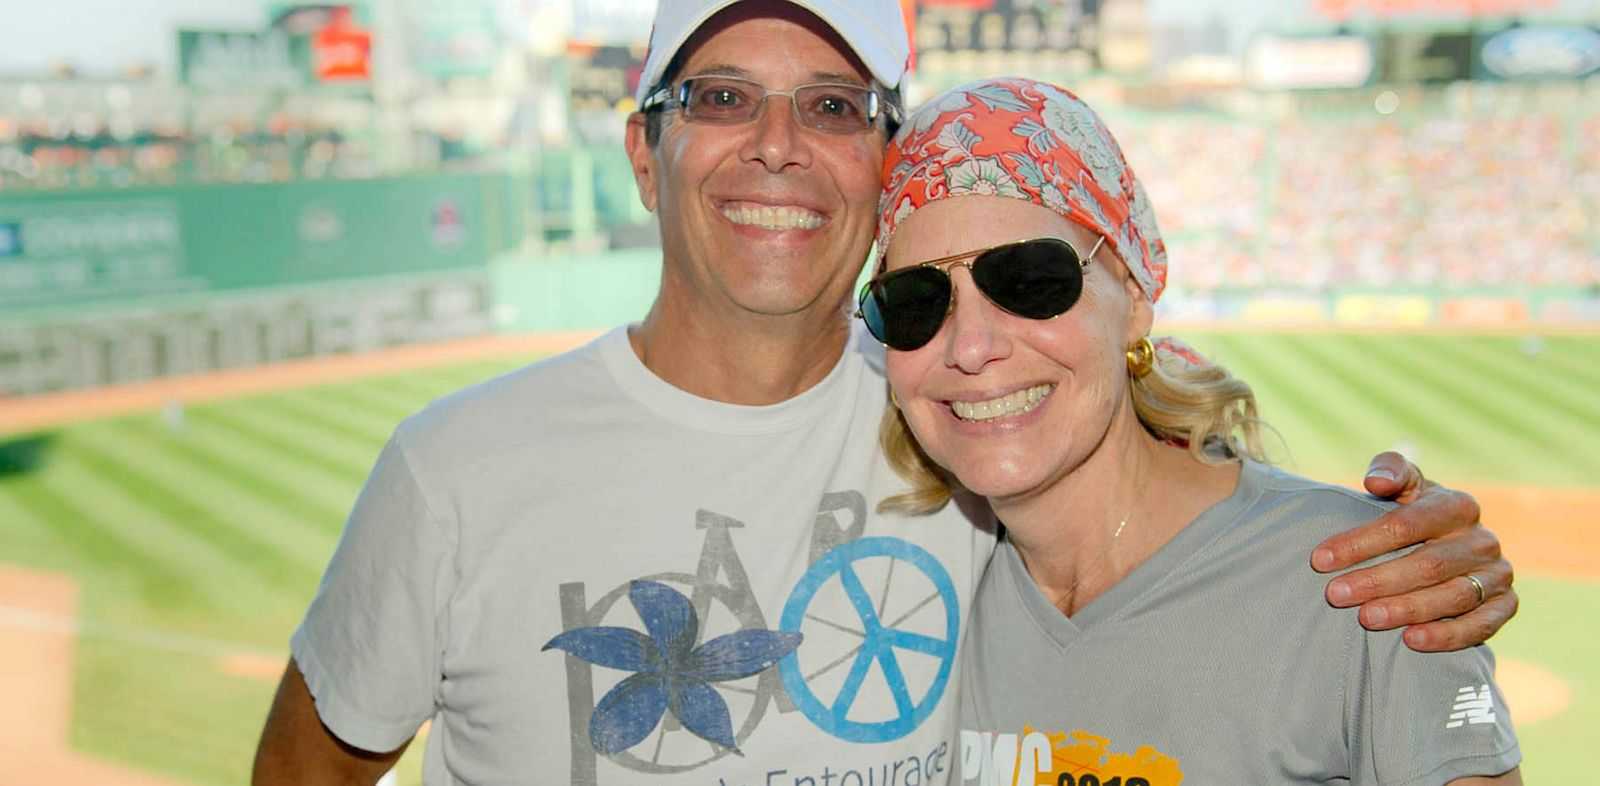 PHOTO: Rick and Erica Kaitz for cancer research.